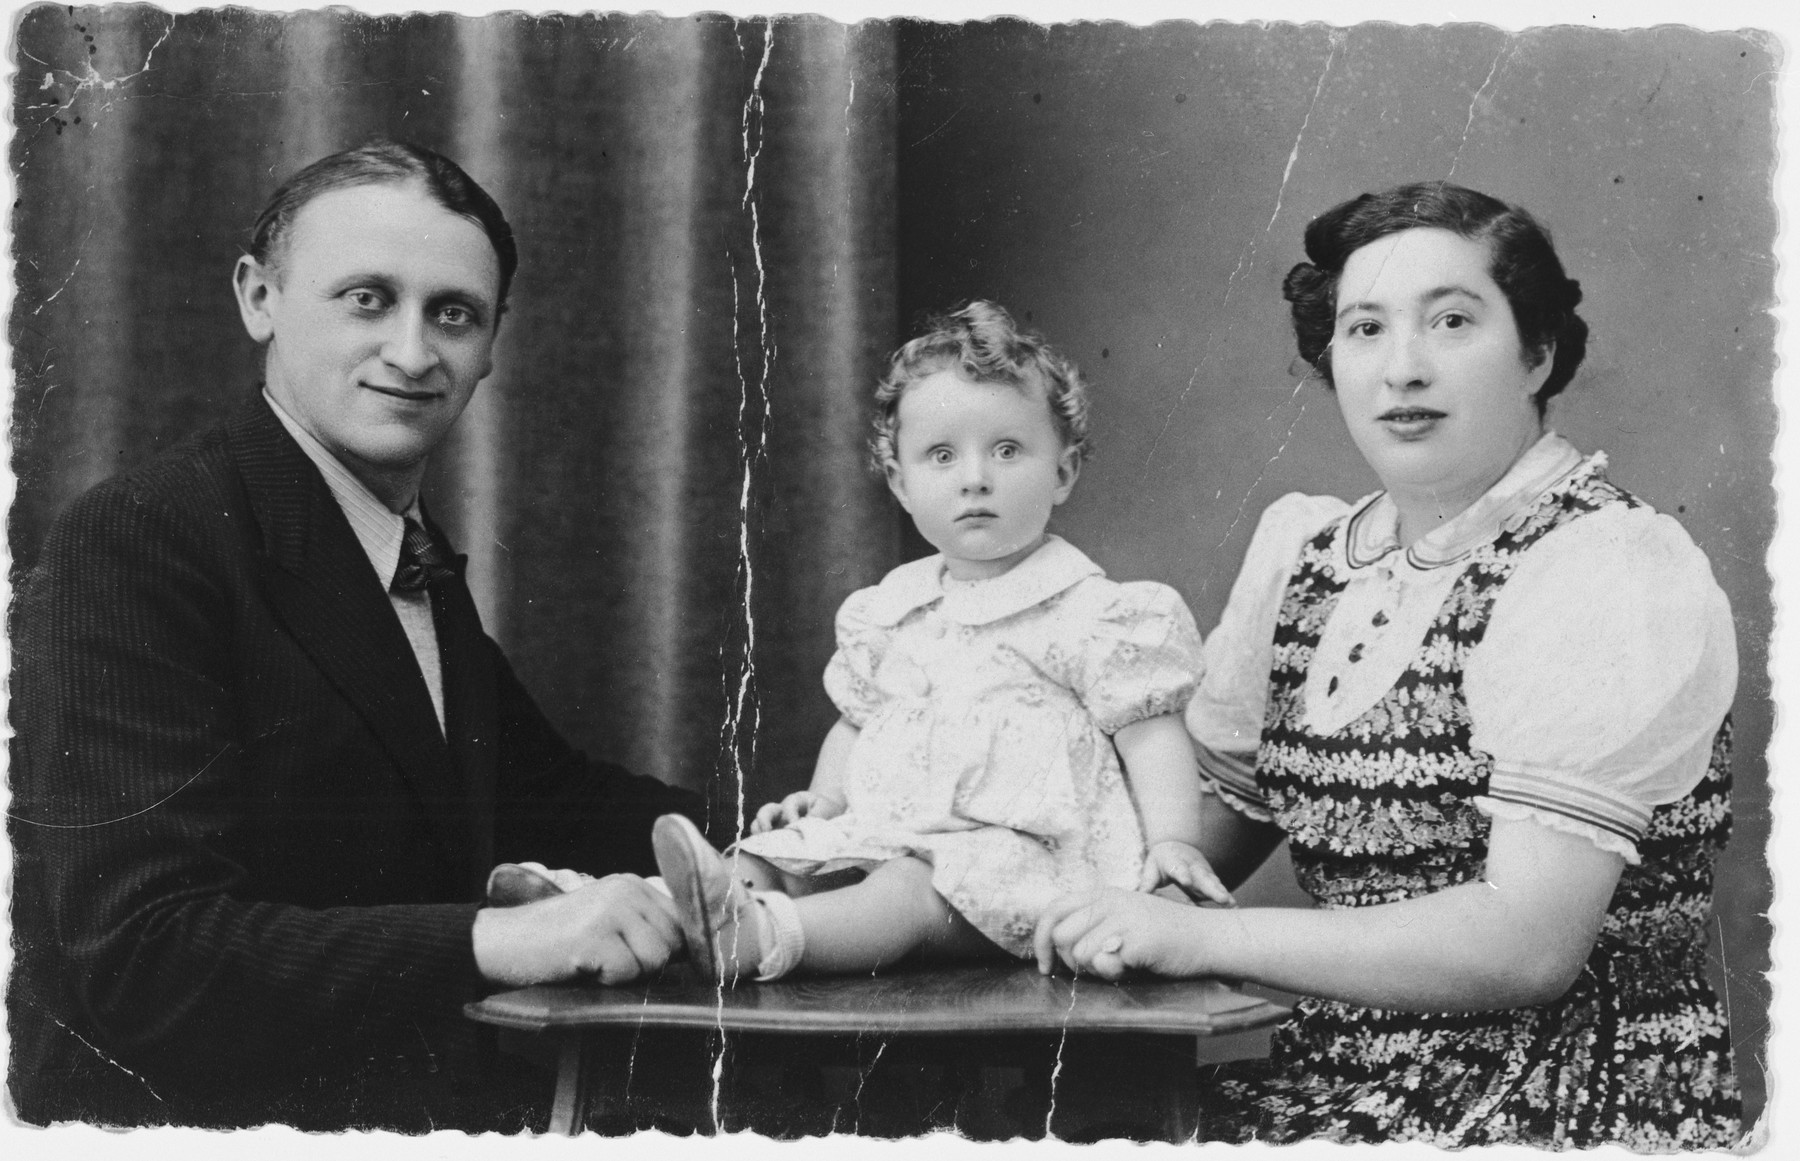 Studio portrait of the Rakowski family in Brussels, Belgium.  Pictured are Ephraim and Blima Rakowski with their infant daughter, Marie Claire, shortly before the child was placed in hiding.